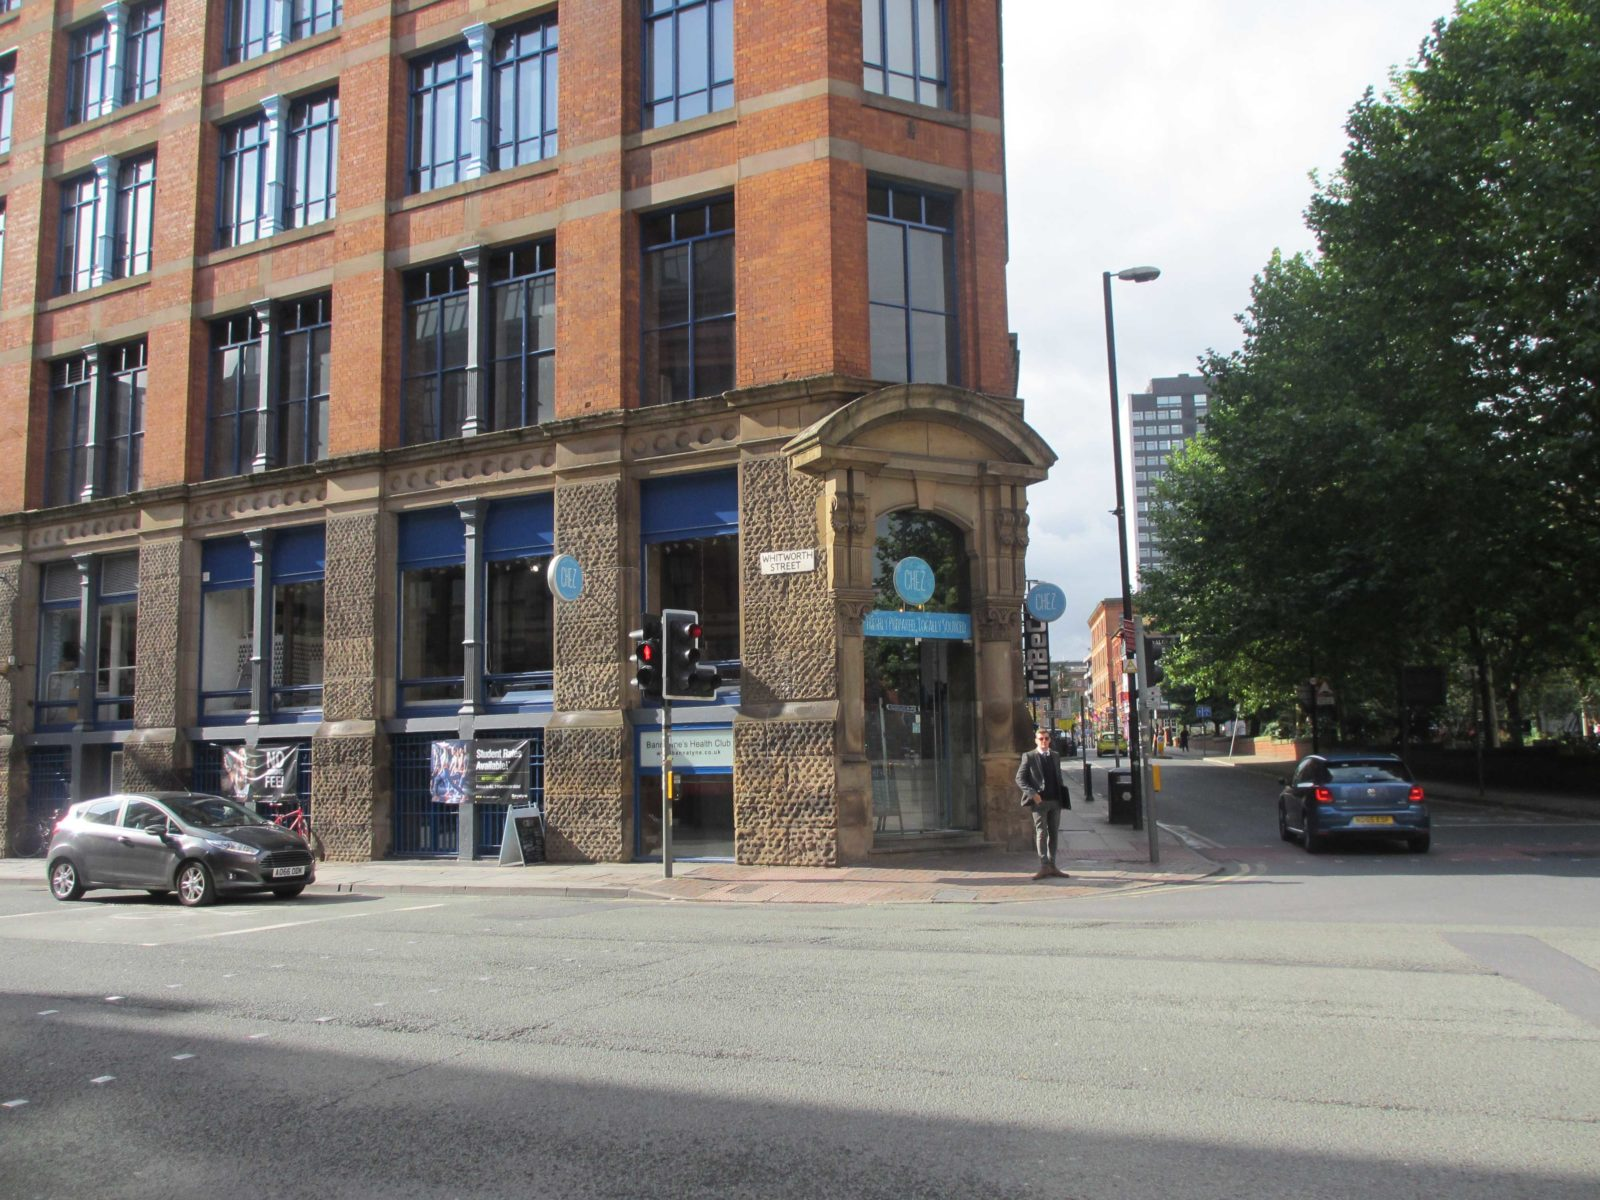 New Manchester City Centre Coffee Shop Opening Businesses